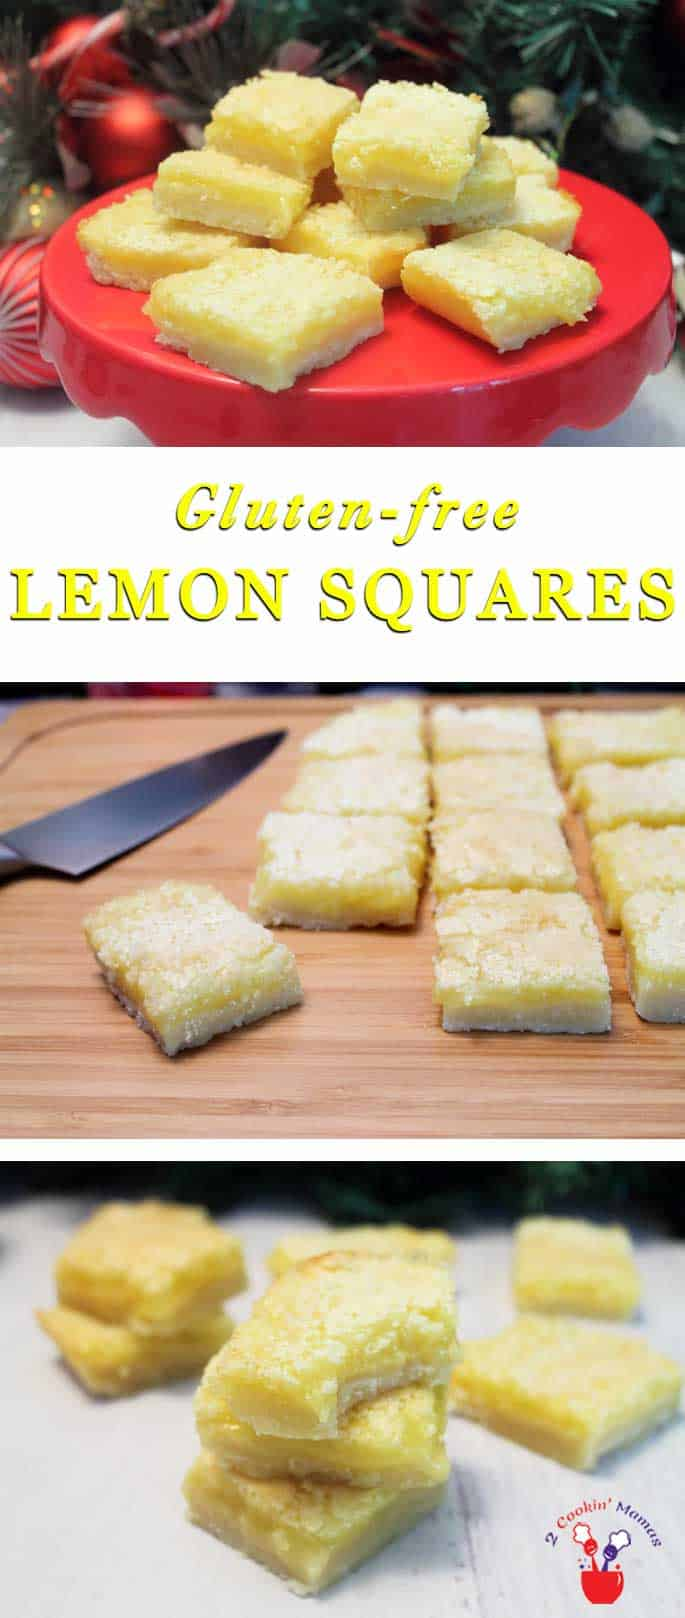 Gluten Free Lemon Squares | 2 Cookin Mamas Gluten free Lemon Squares are rich, refreshingly sweet and slightly tart. It's like a little lemon pie you can hold in your hand! #recipe